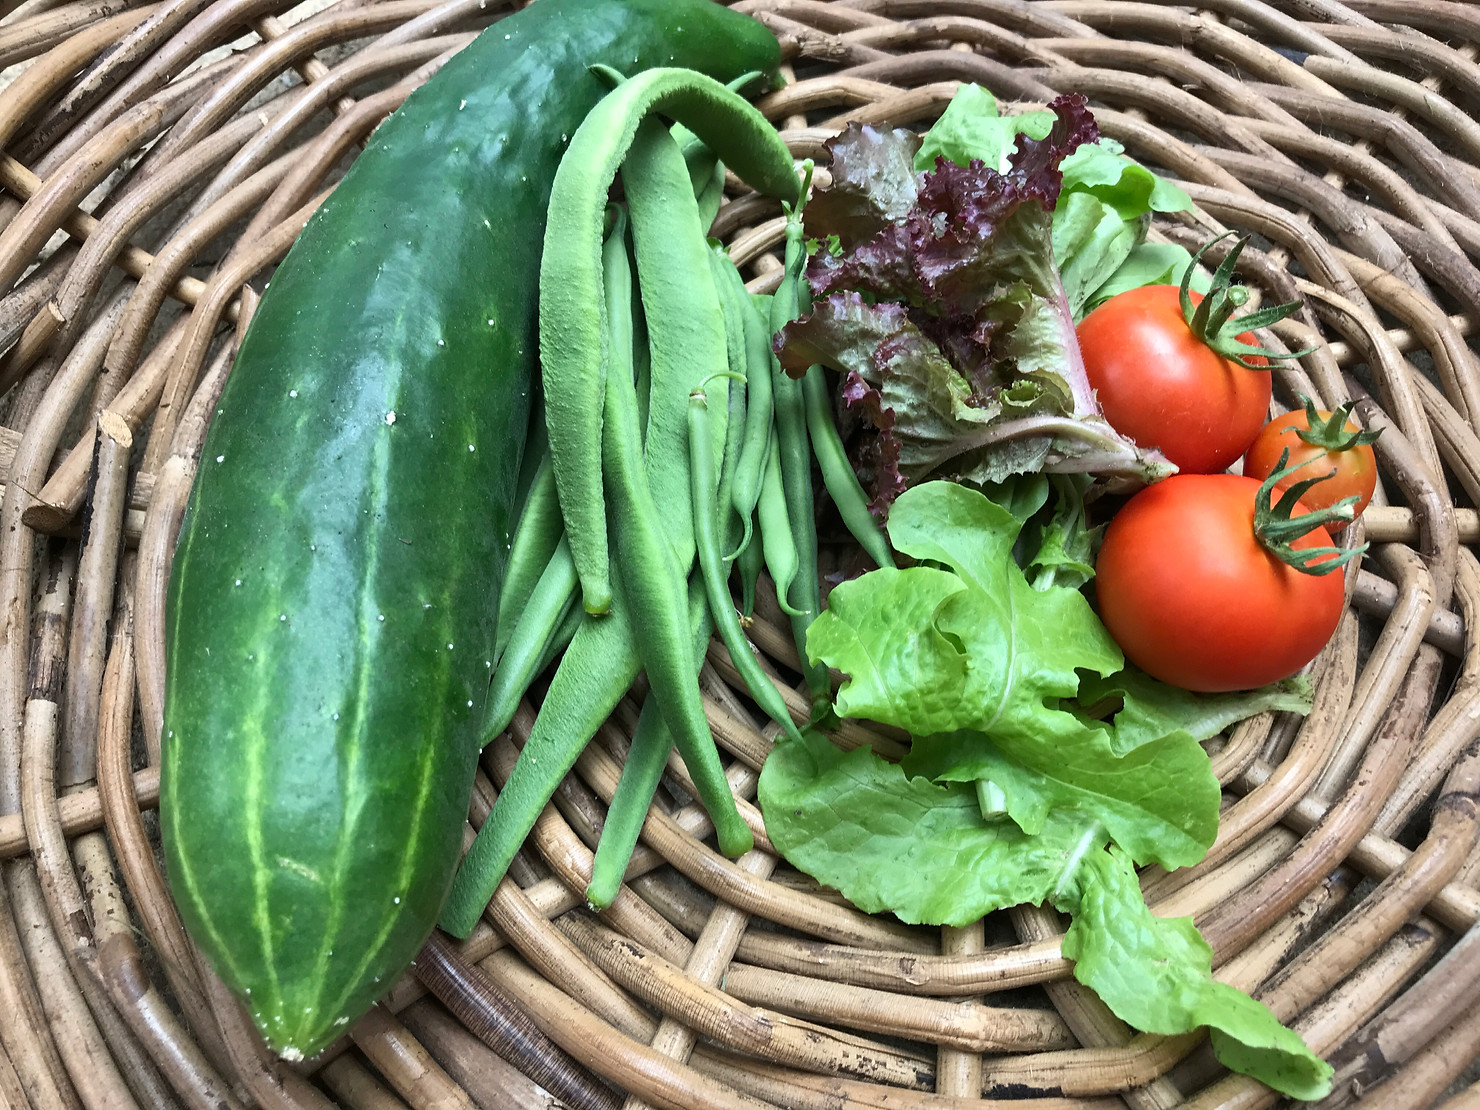 Food grown on our vegetable patch